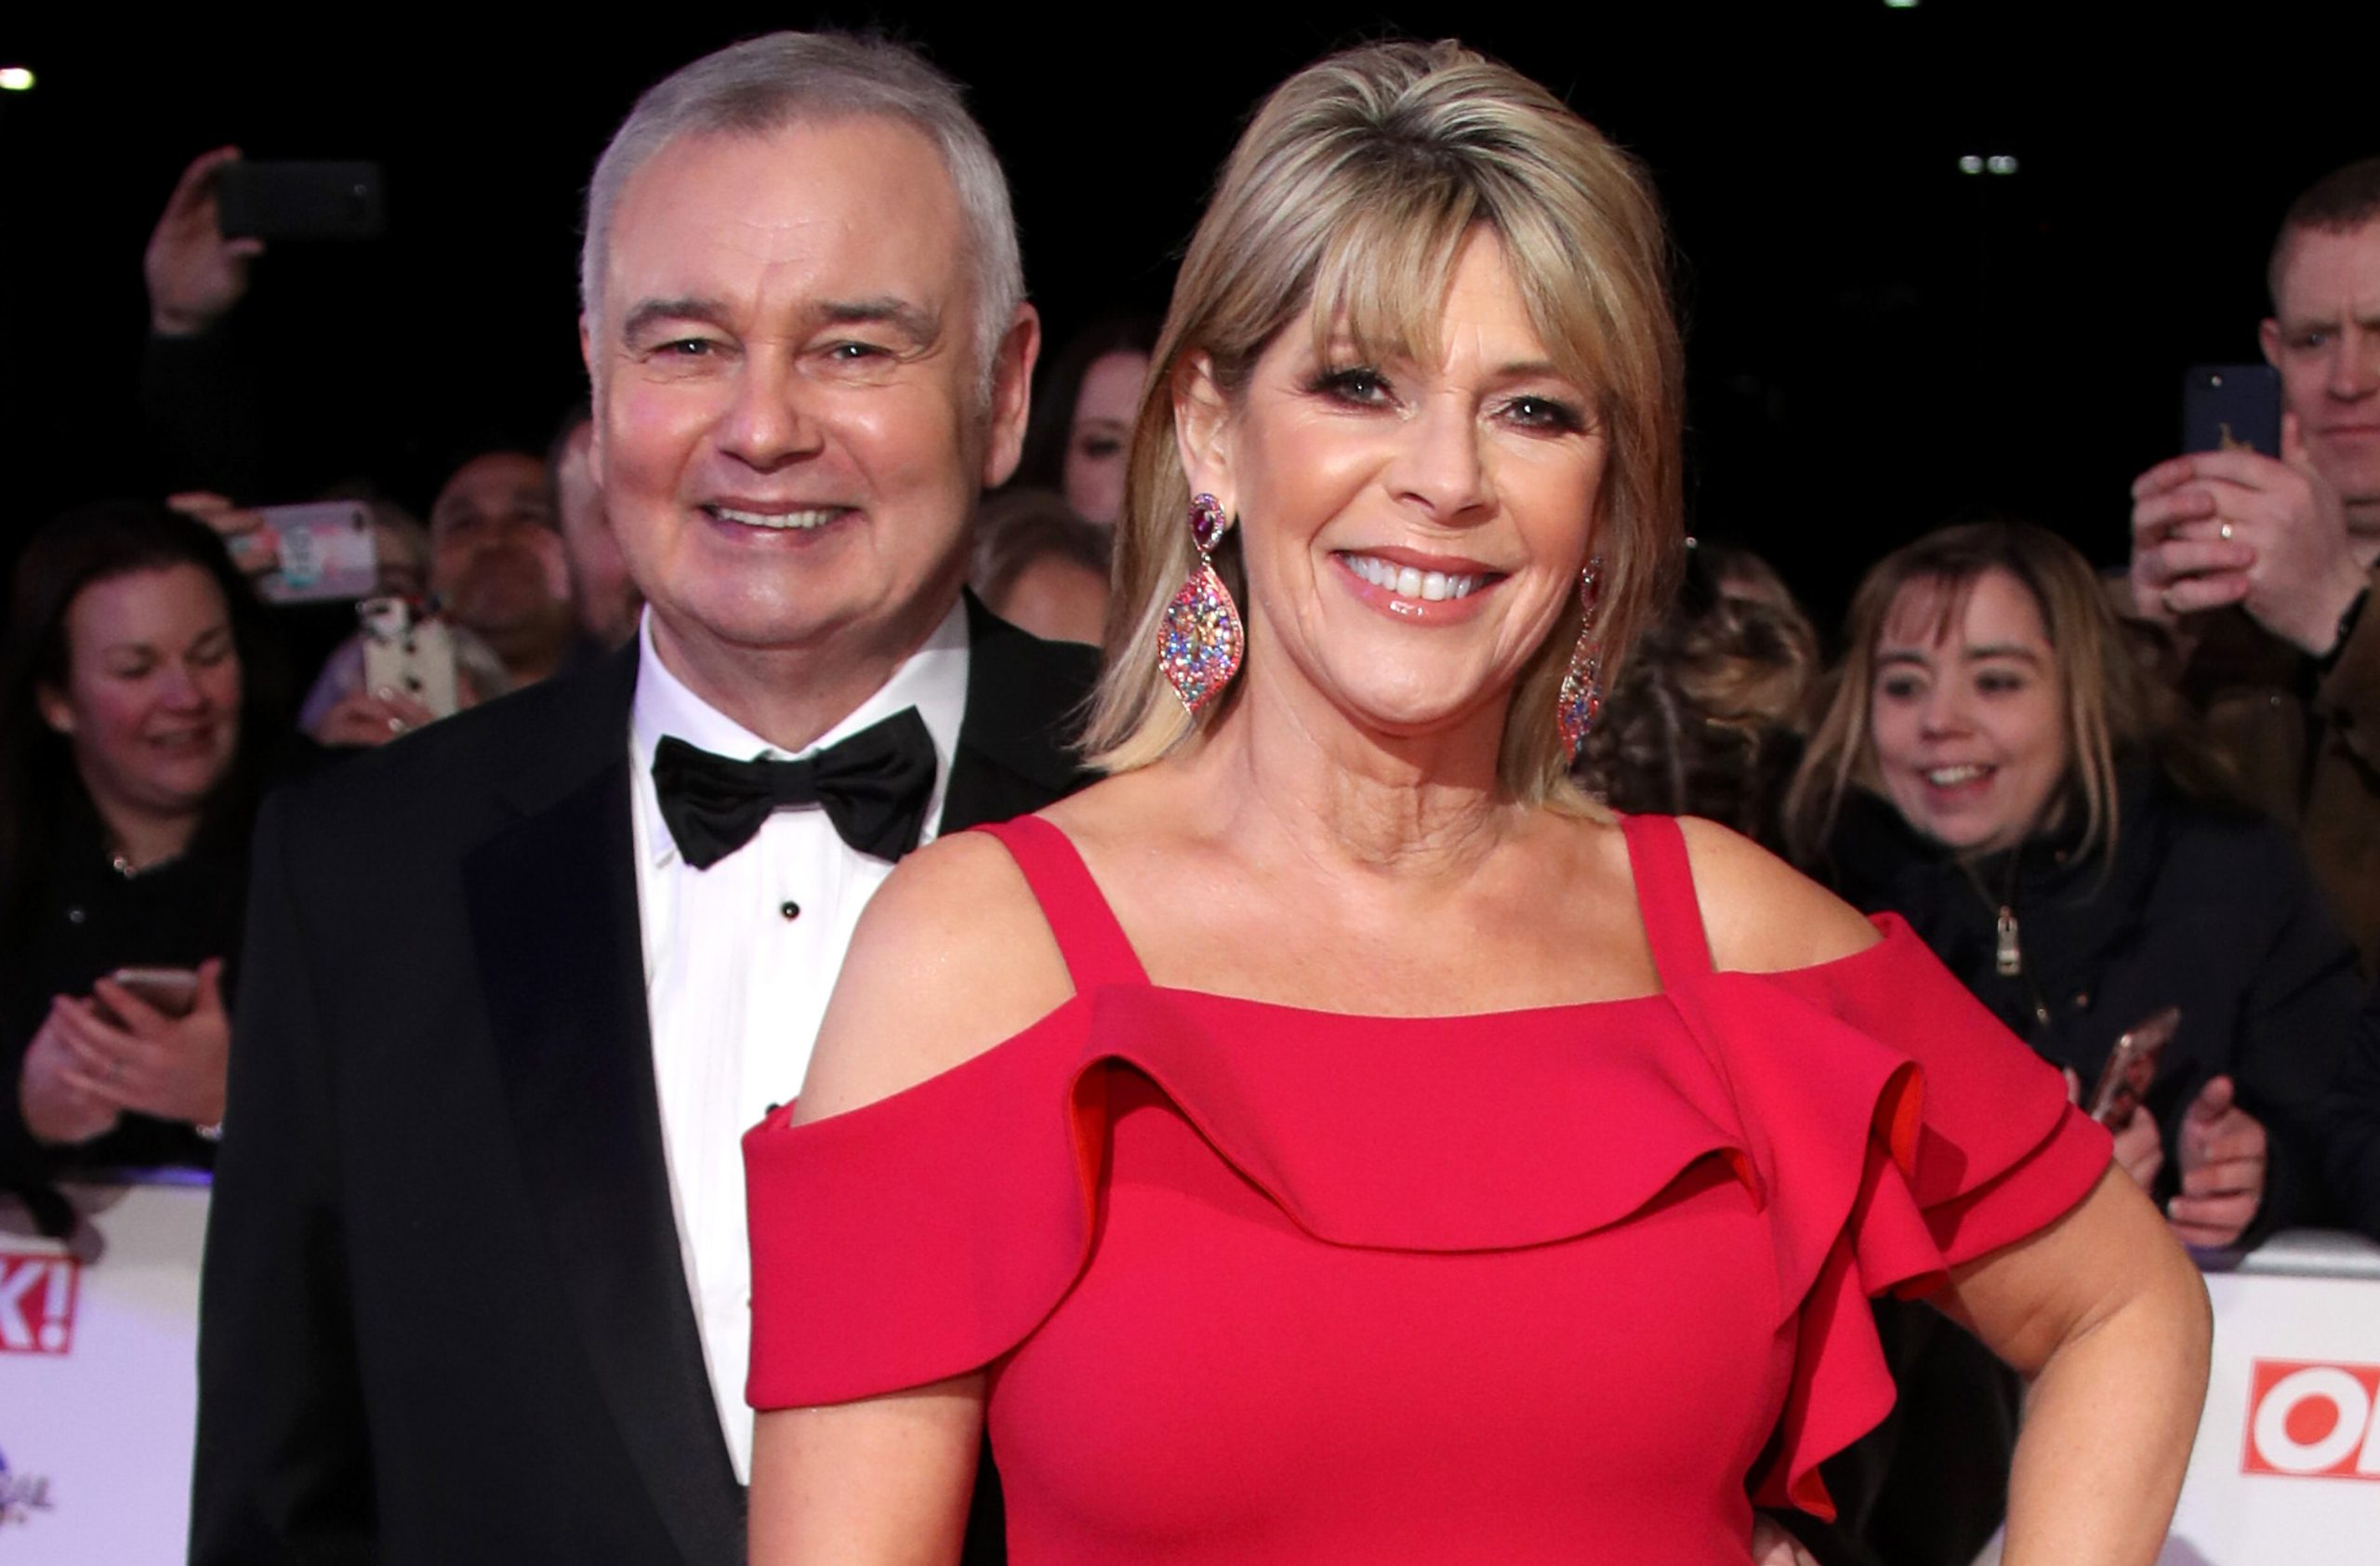 'You look phenomenal!!' Fans can't get over how stunning Ruth Langsford looked at the NTA's last night